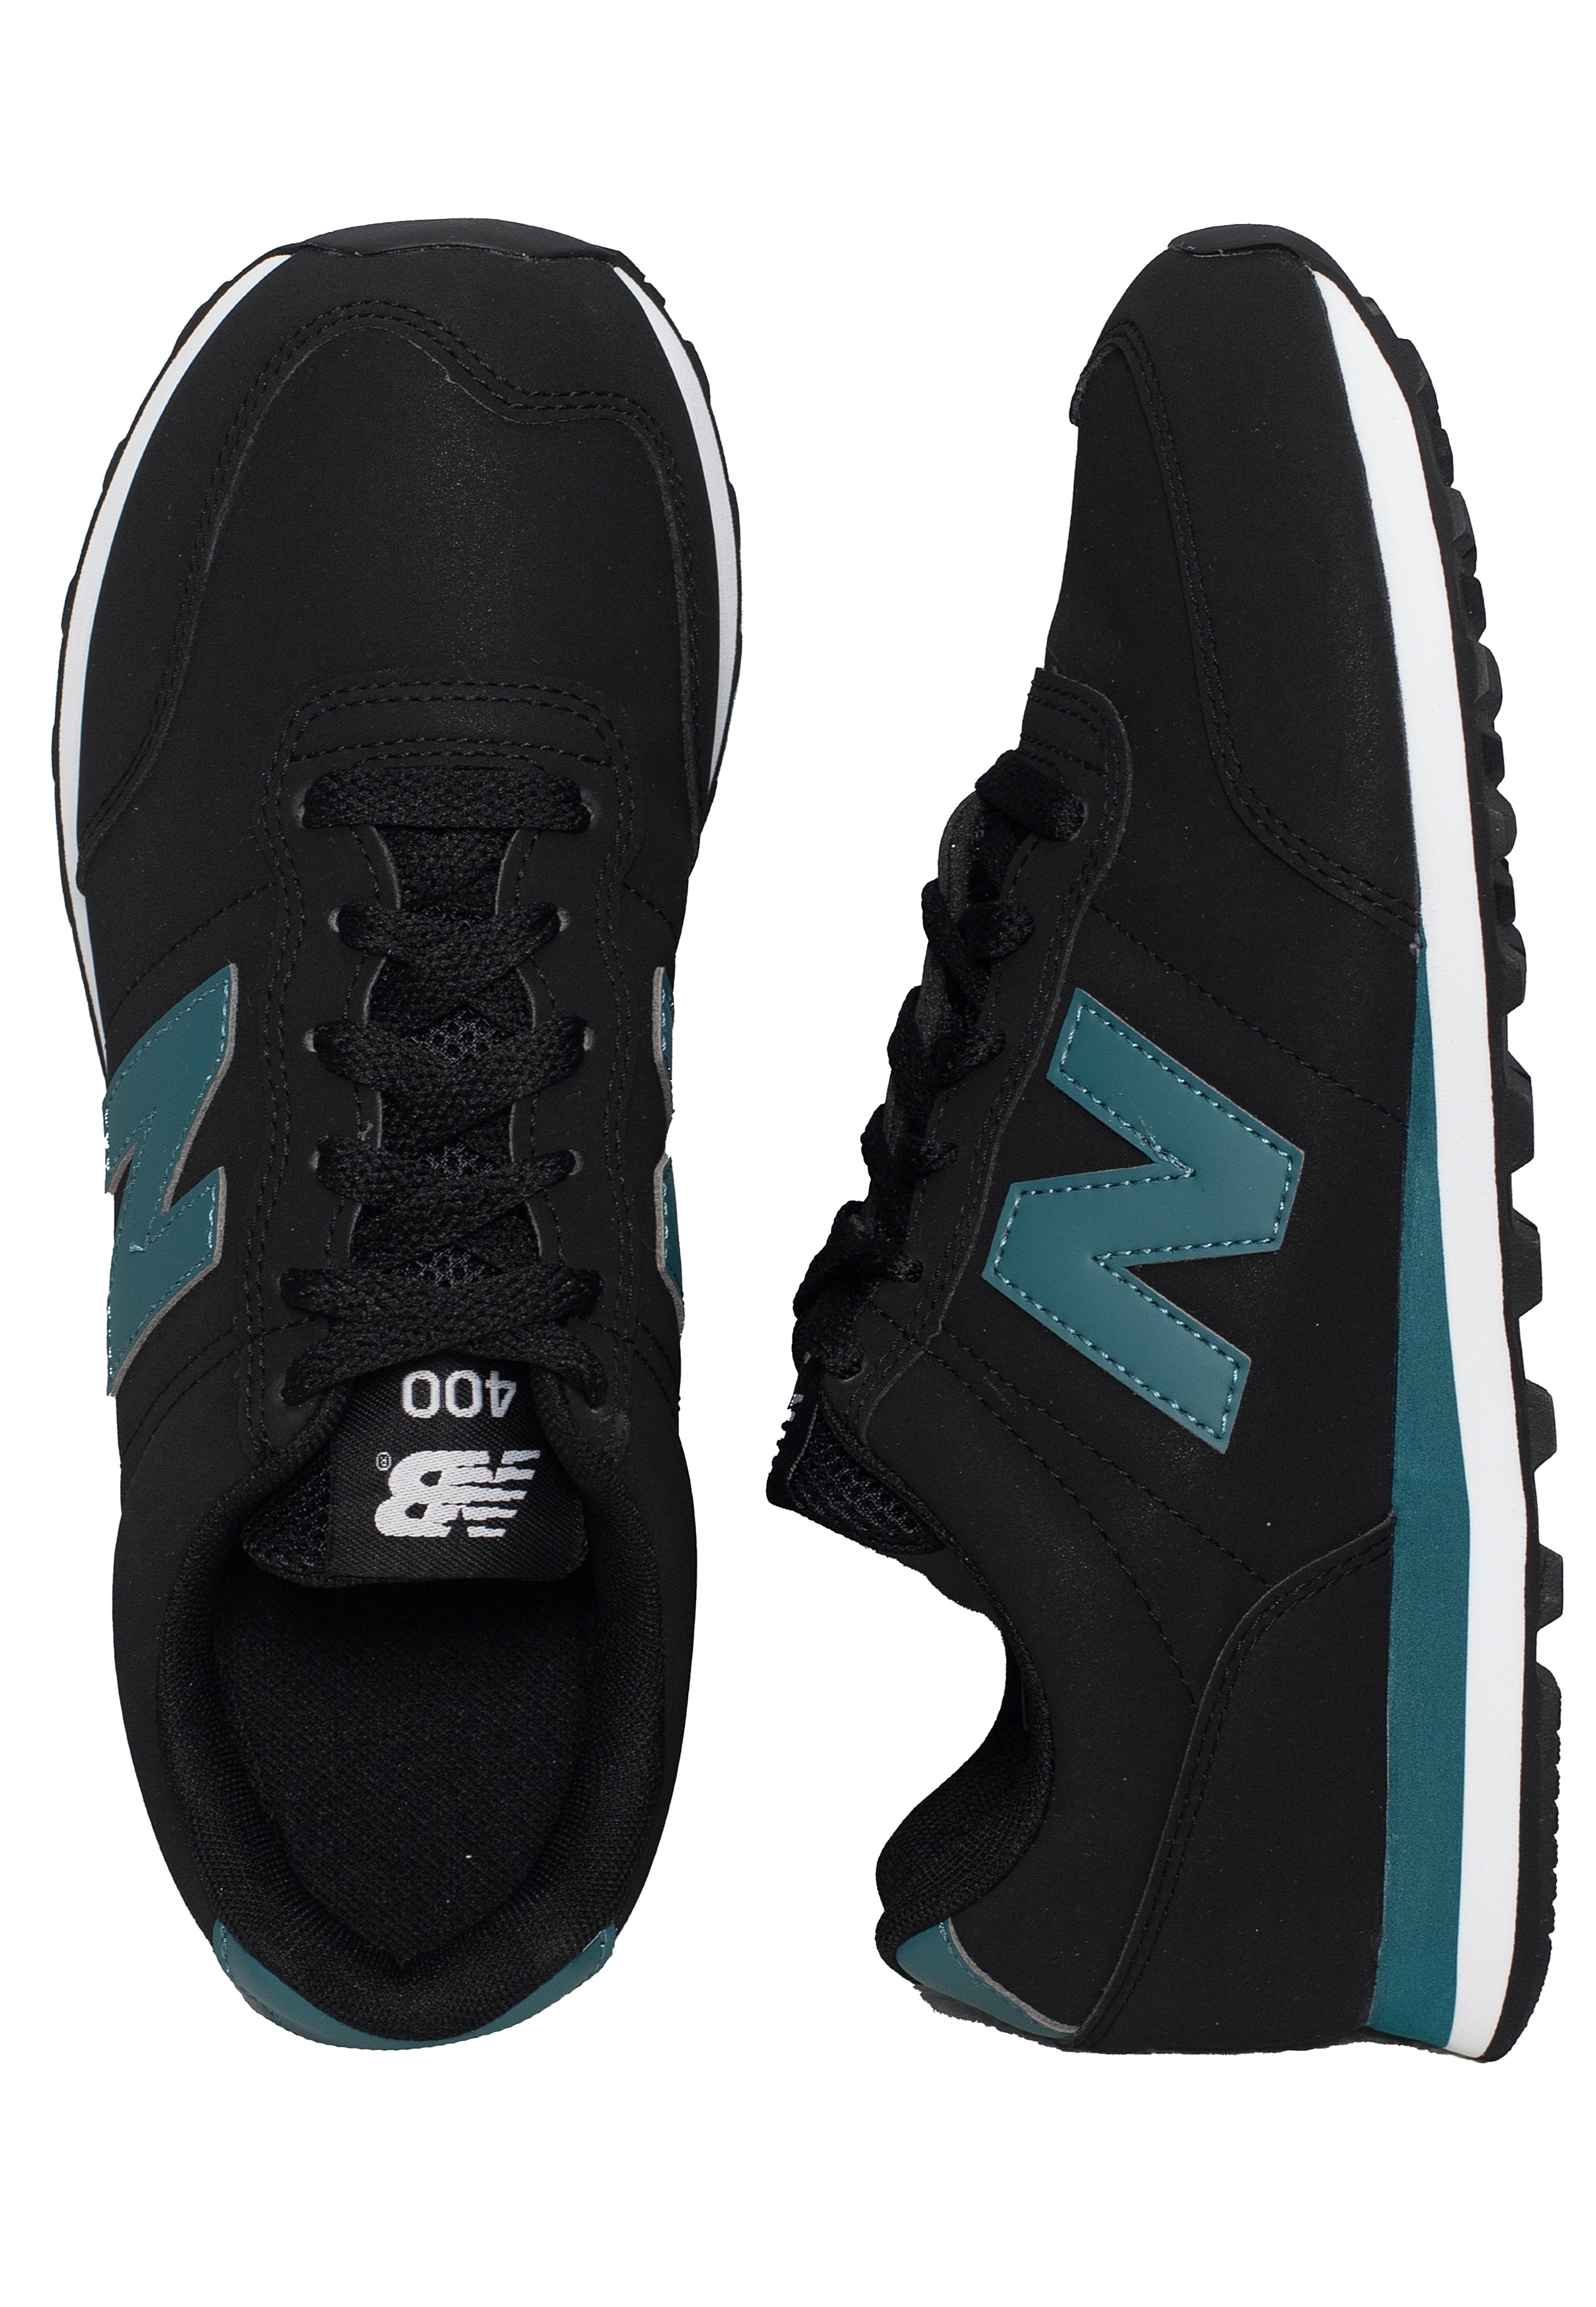 New Balance - GM400V1 Black/Mountain Teal - Sneakers